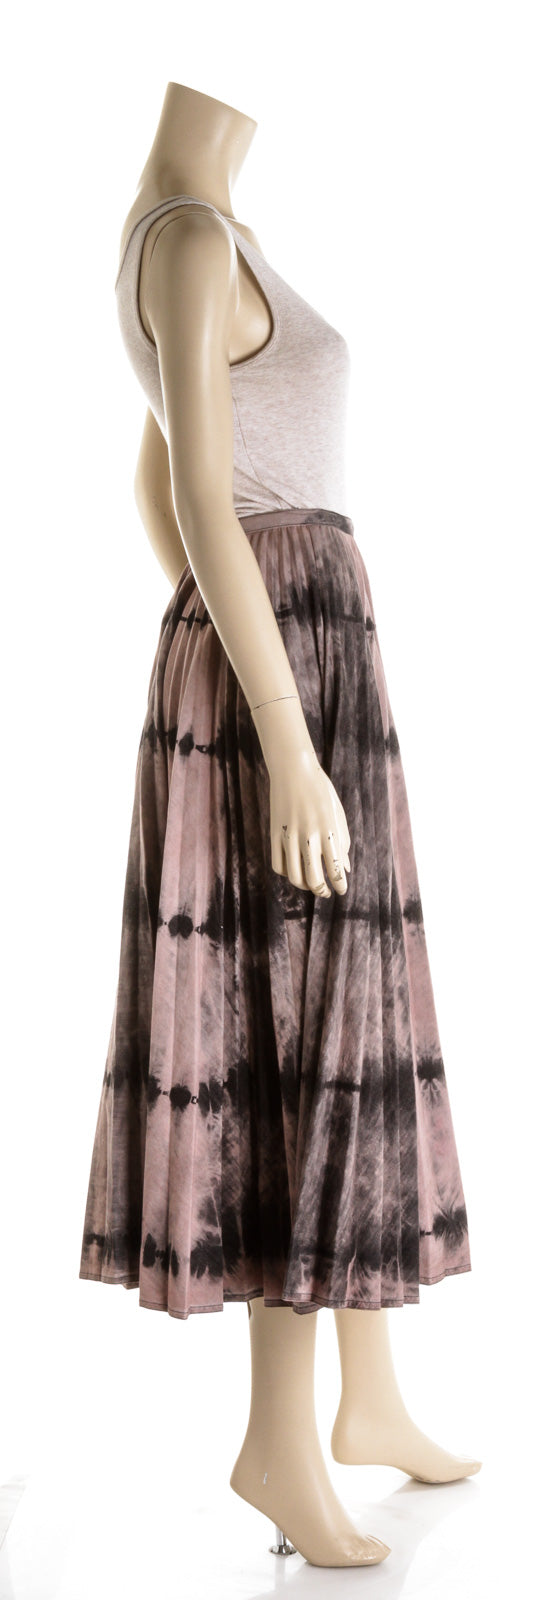 Christian Dior Pink & Gray Tie Dye Pleated Maxi Dress (Size 4)